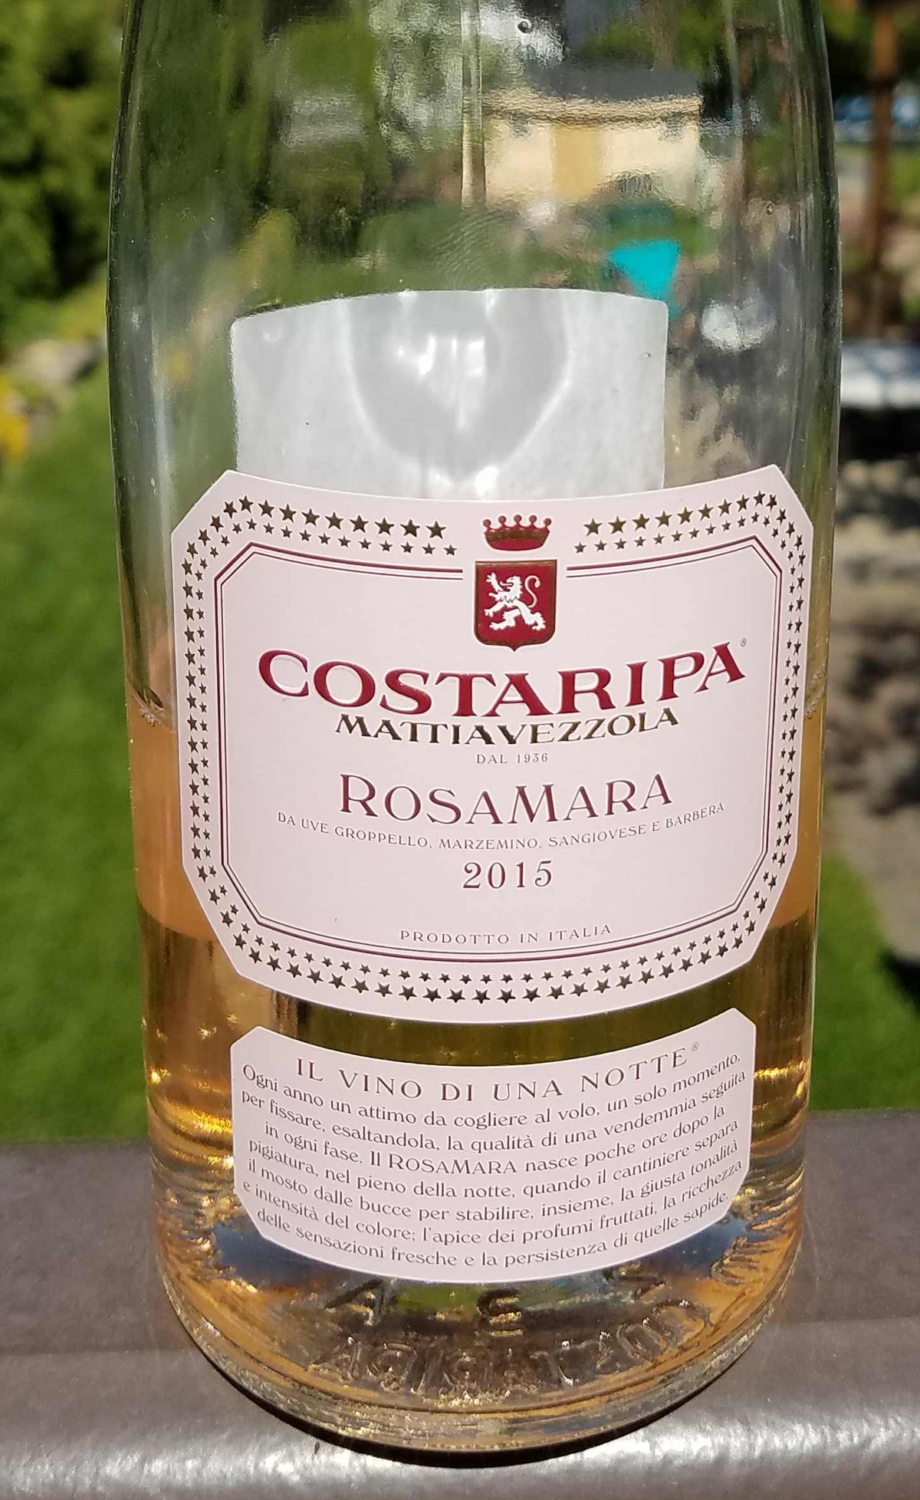 Costaripa Rosamara Chiaretto from the Lake Garda region in Lombardia